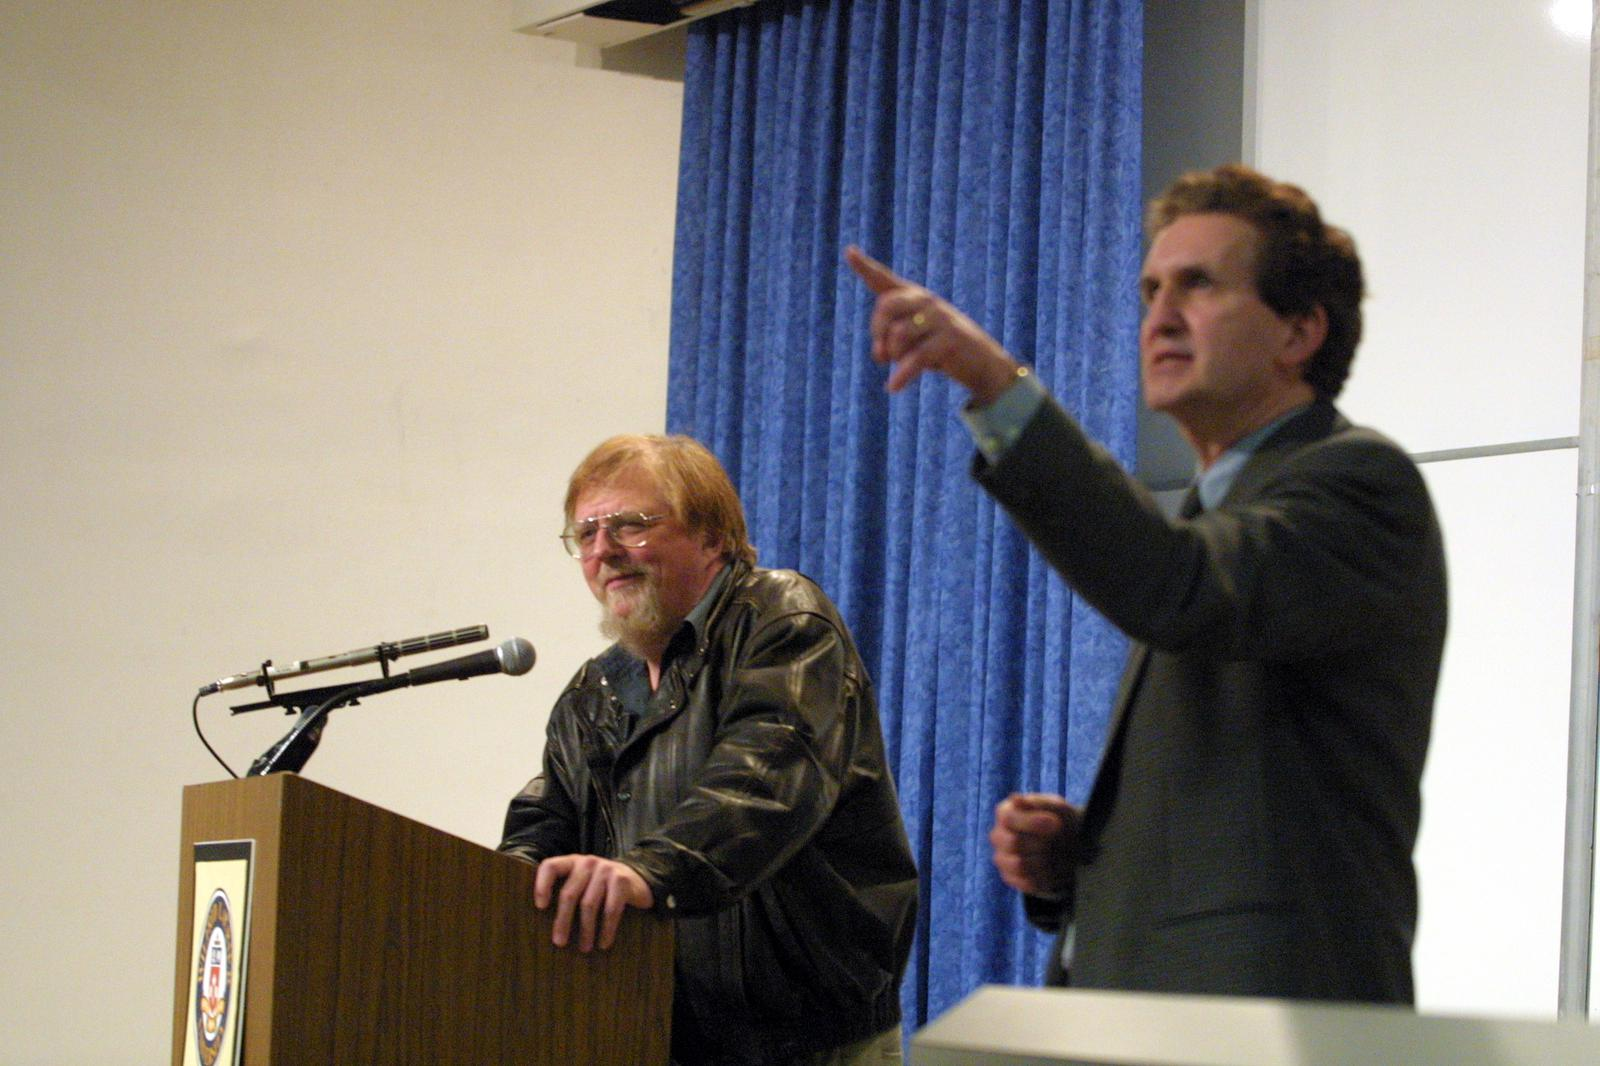 Gwynne Dyer and Robert Campbell during lecture